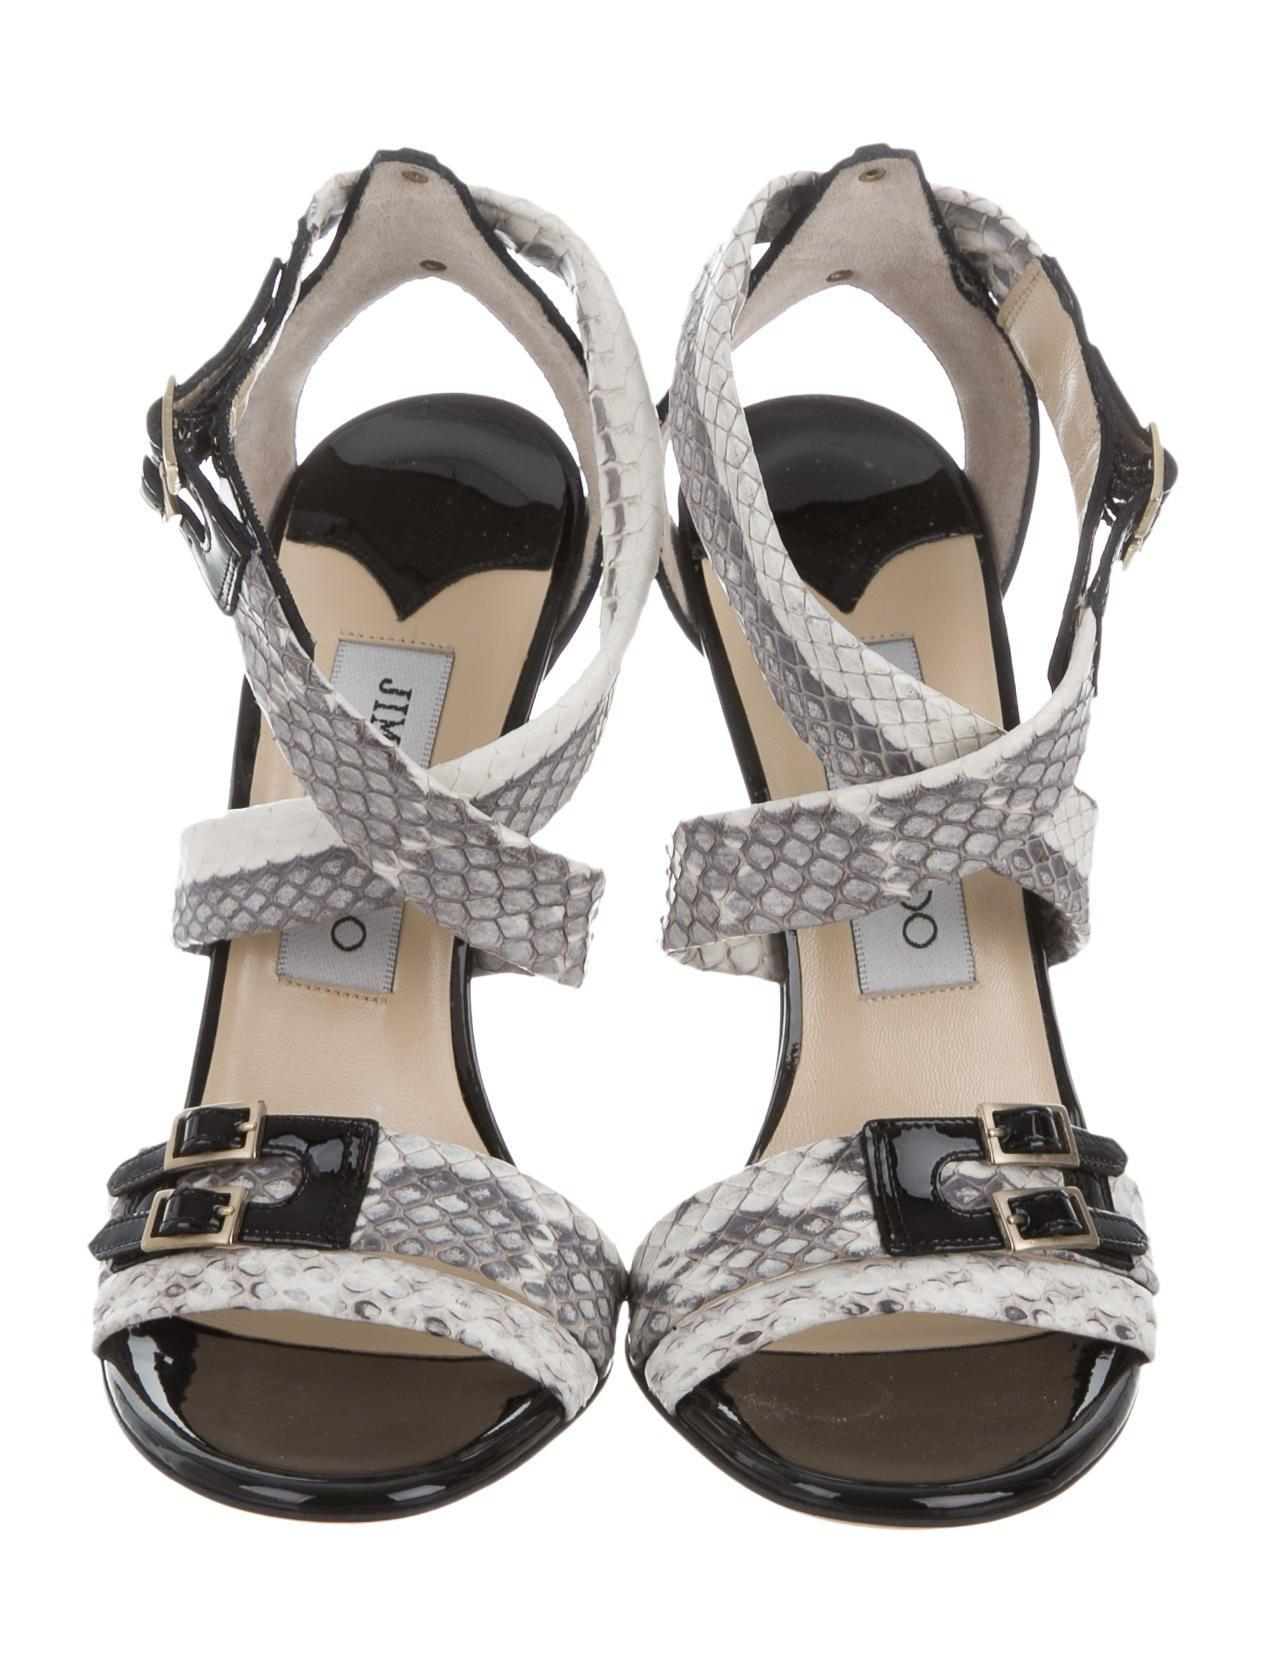 Jimmy Choo Snakeskin Elaphie Sandals w/ Tags 2014 new buy cheap new styles buy cheap factory outlet Fjrt2ezFSs